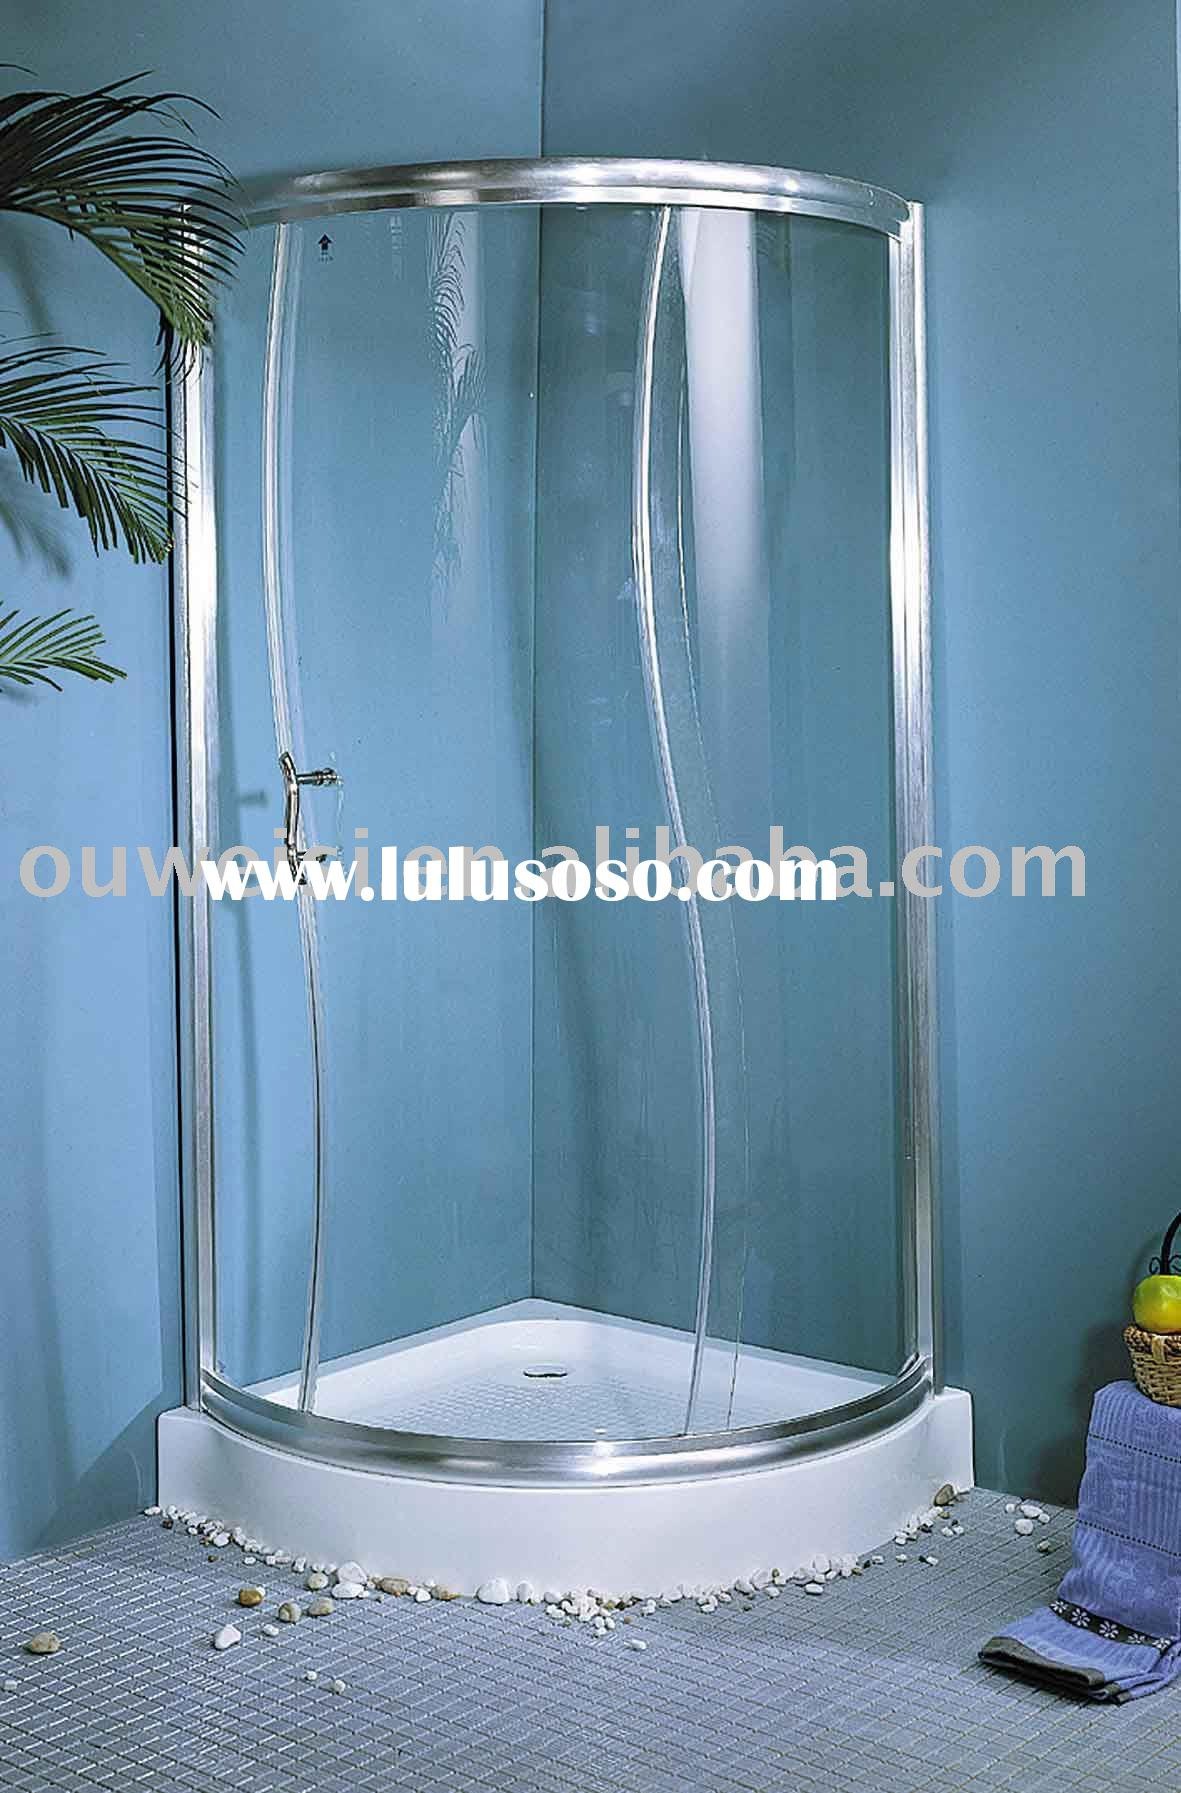 shower cubicle/shower room/shower enclosure/bath screen Y608